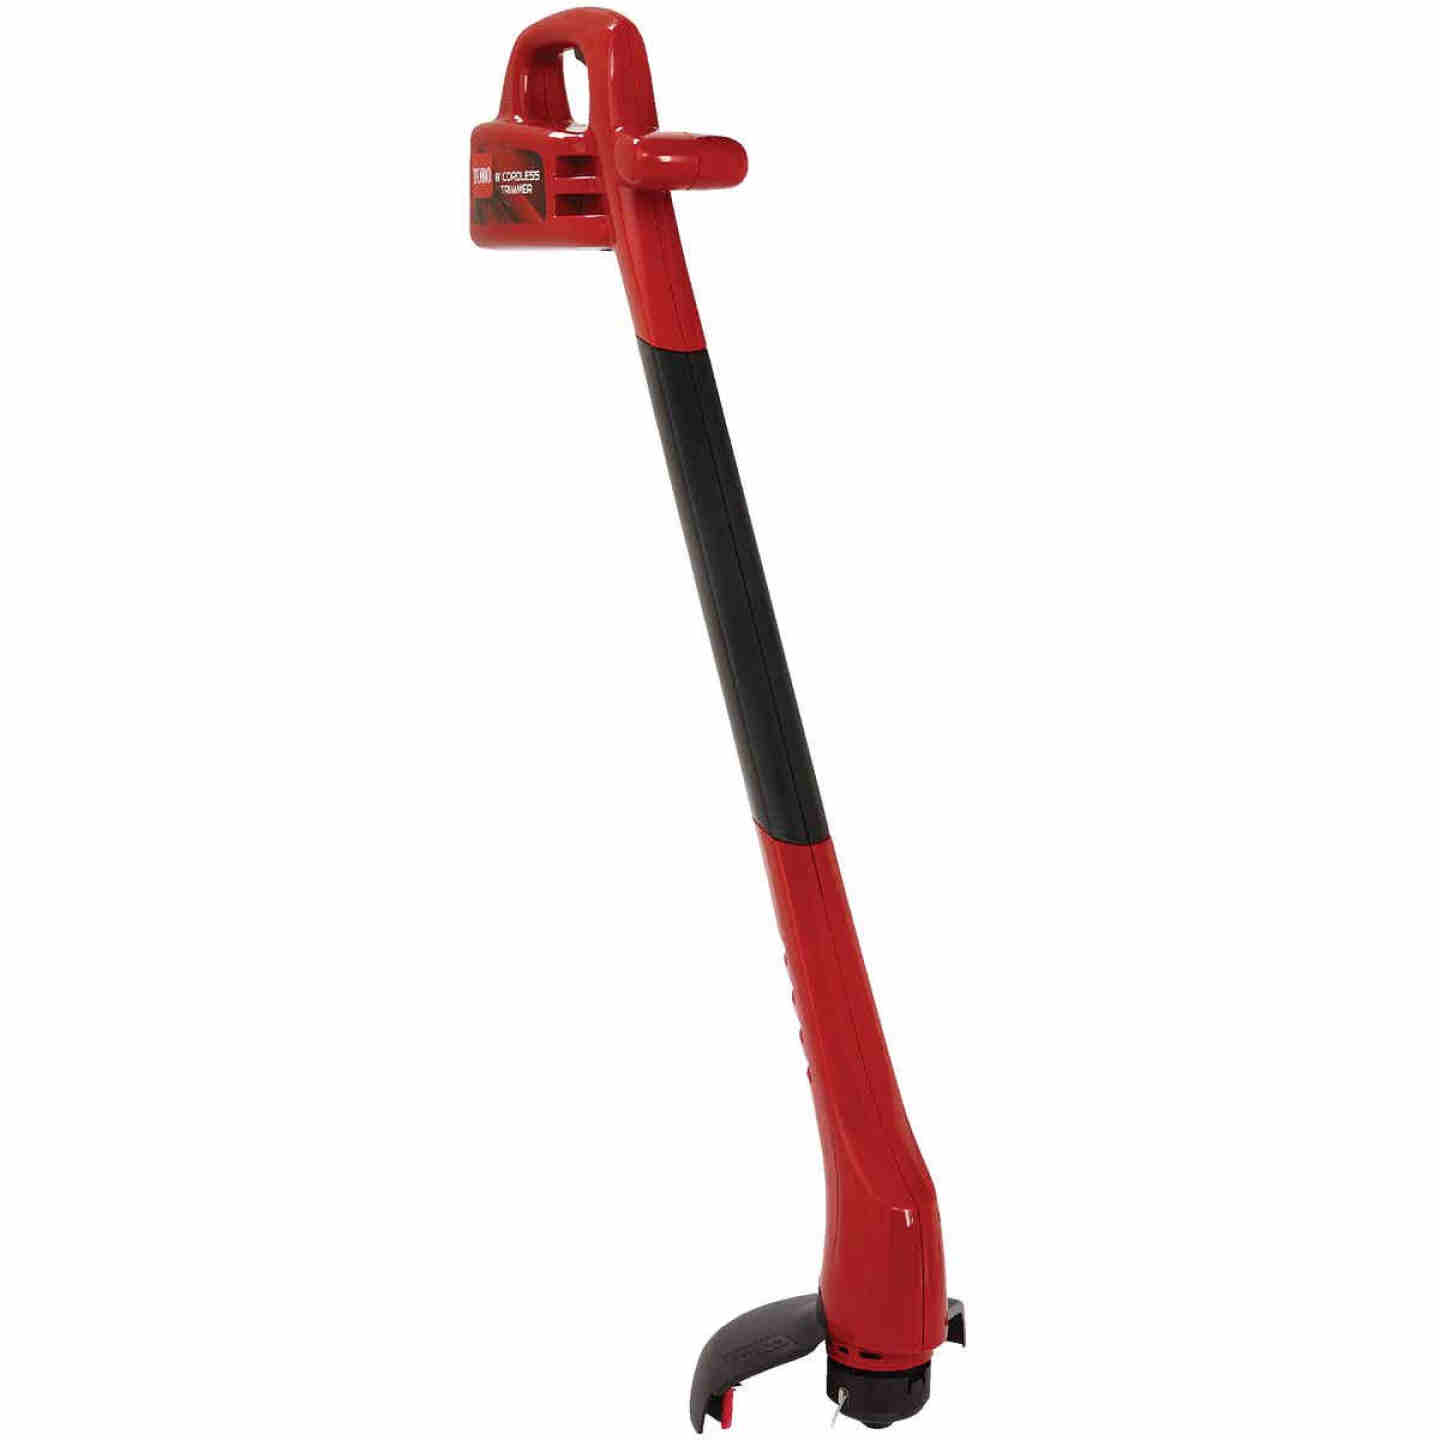 Toro 12V 8 In. Ni-Cad Straight Cordless String Trimmer Image 11